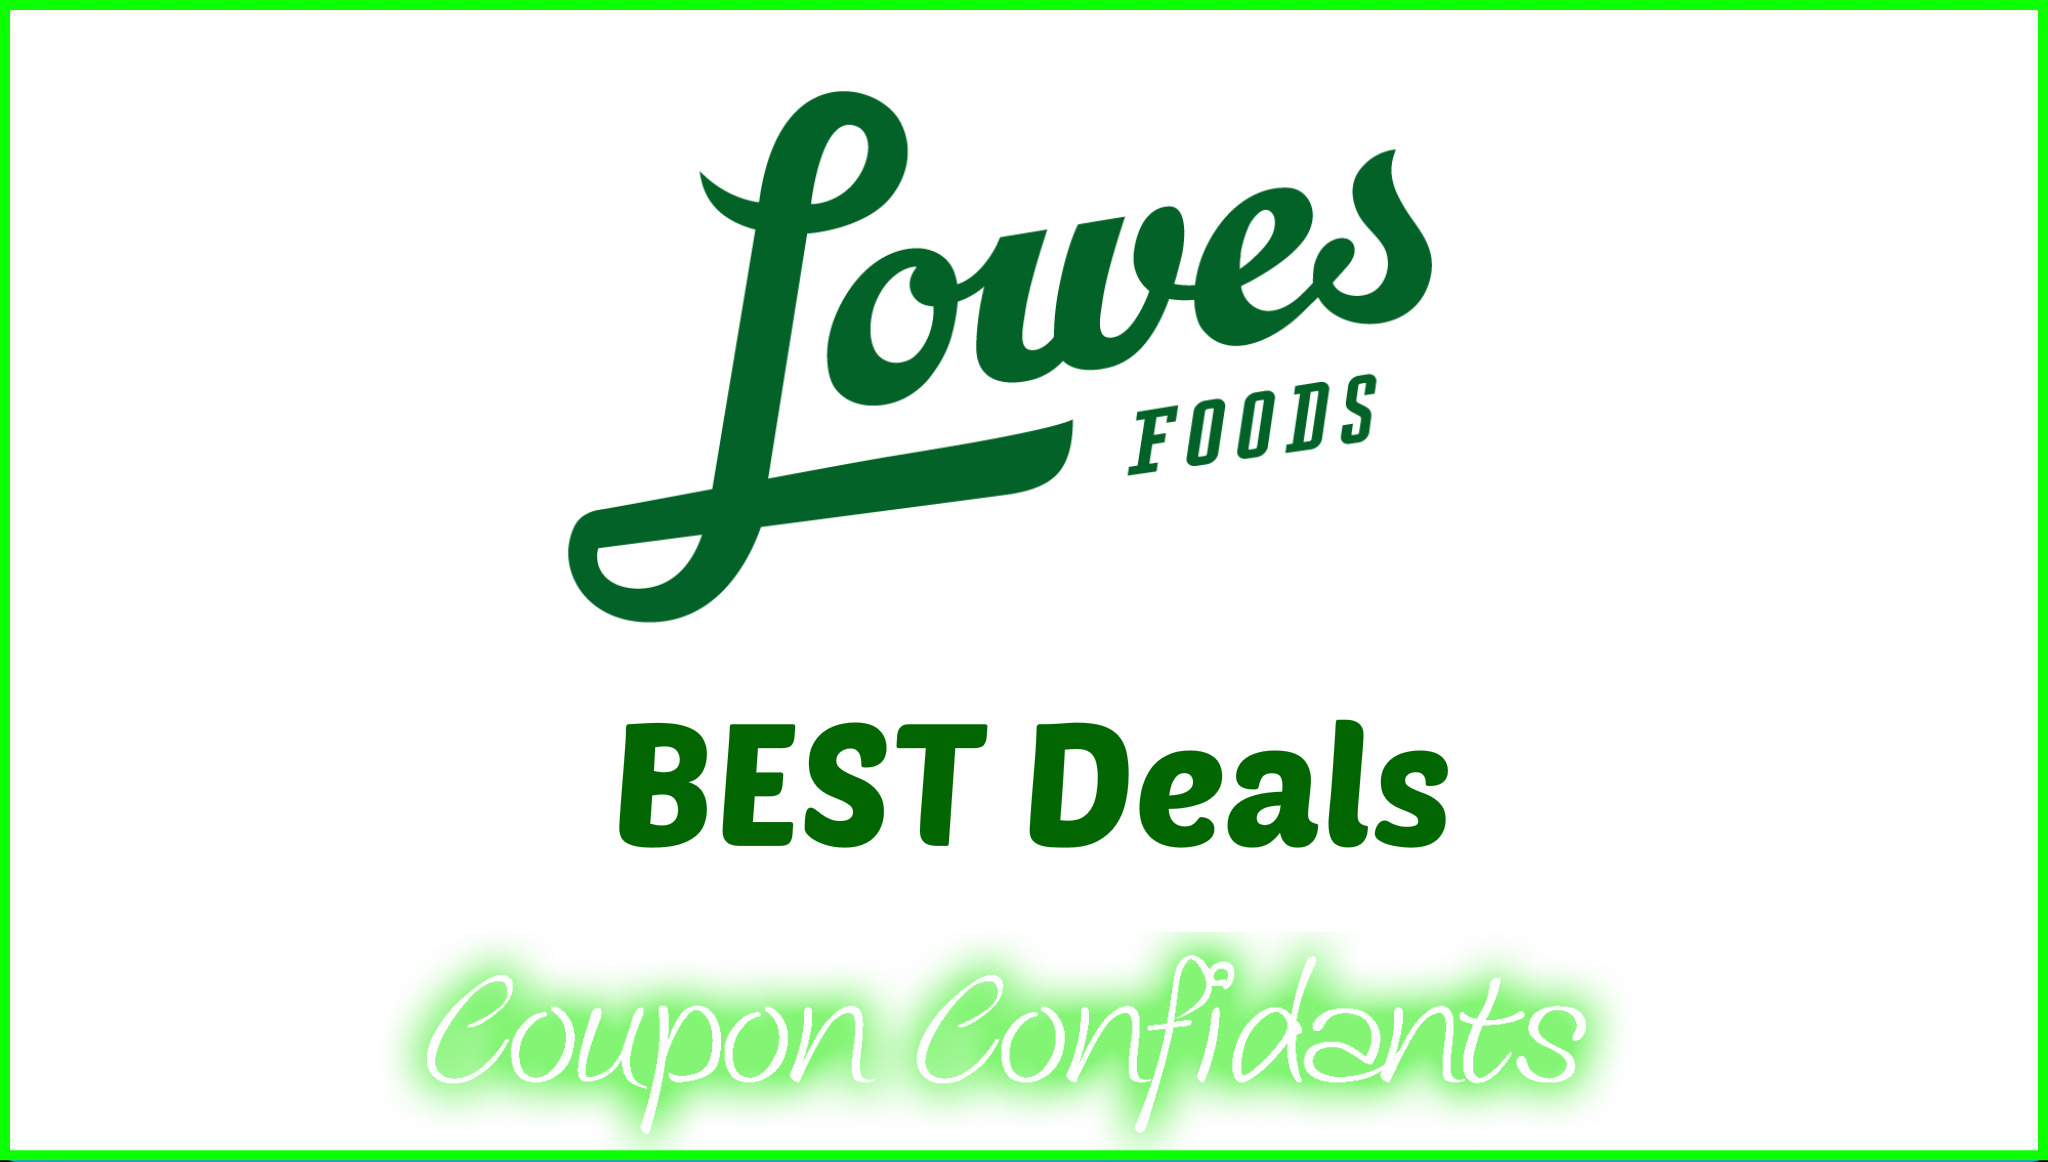 Lowes Foods - Dec 13 - Dec 19